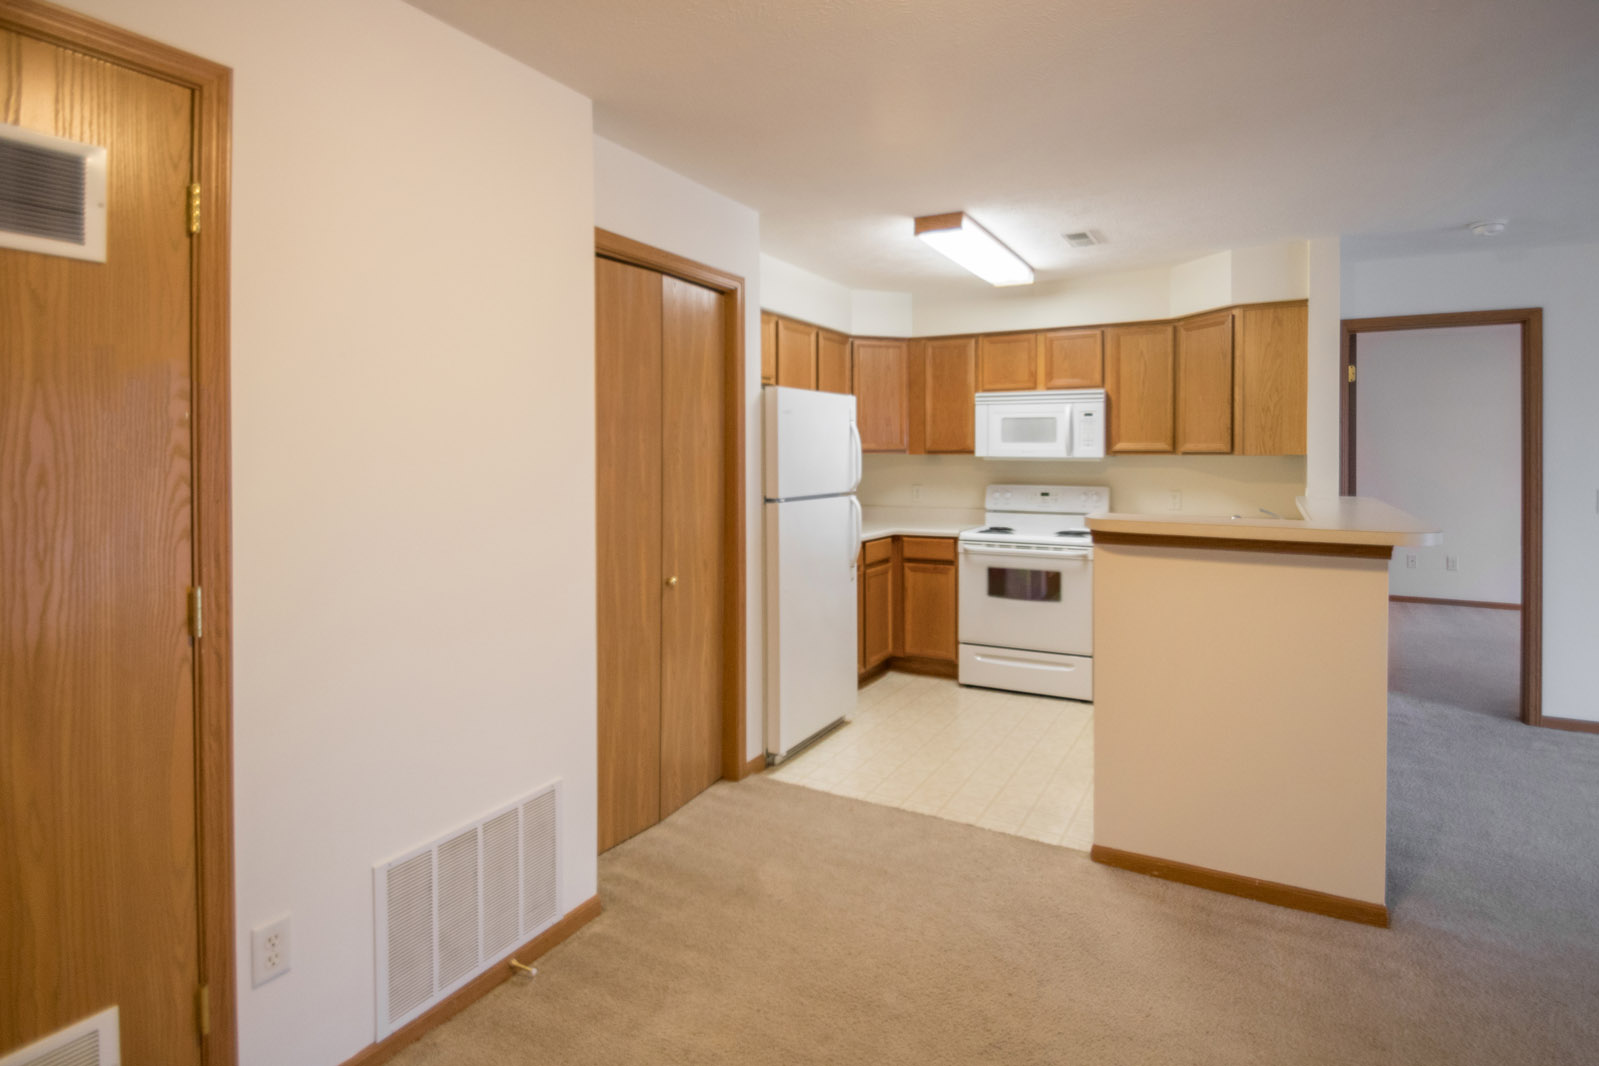 Spacious Kitchen at Northridge Apartments in Gretna, Nebraska